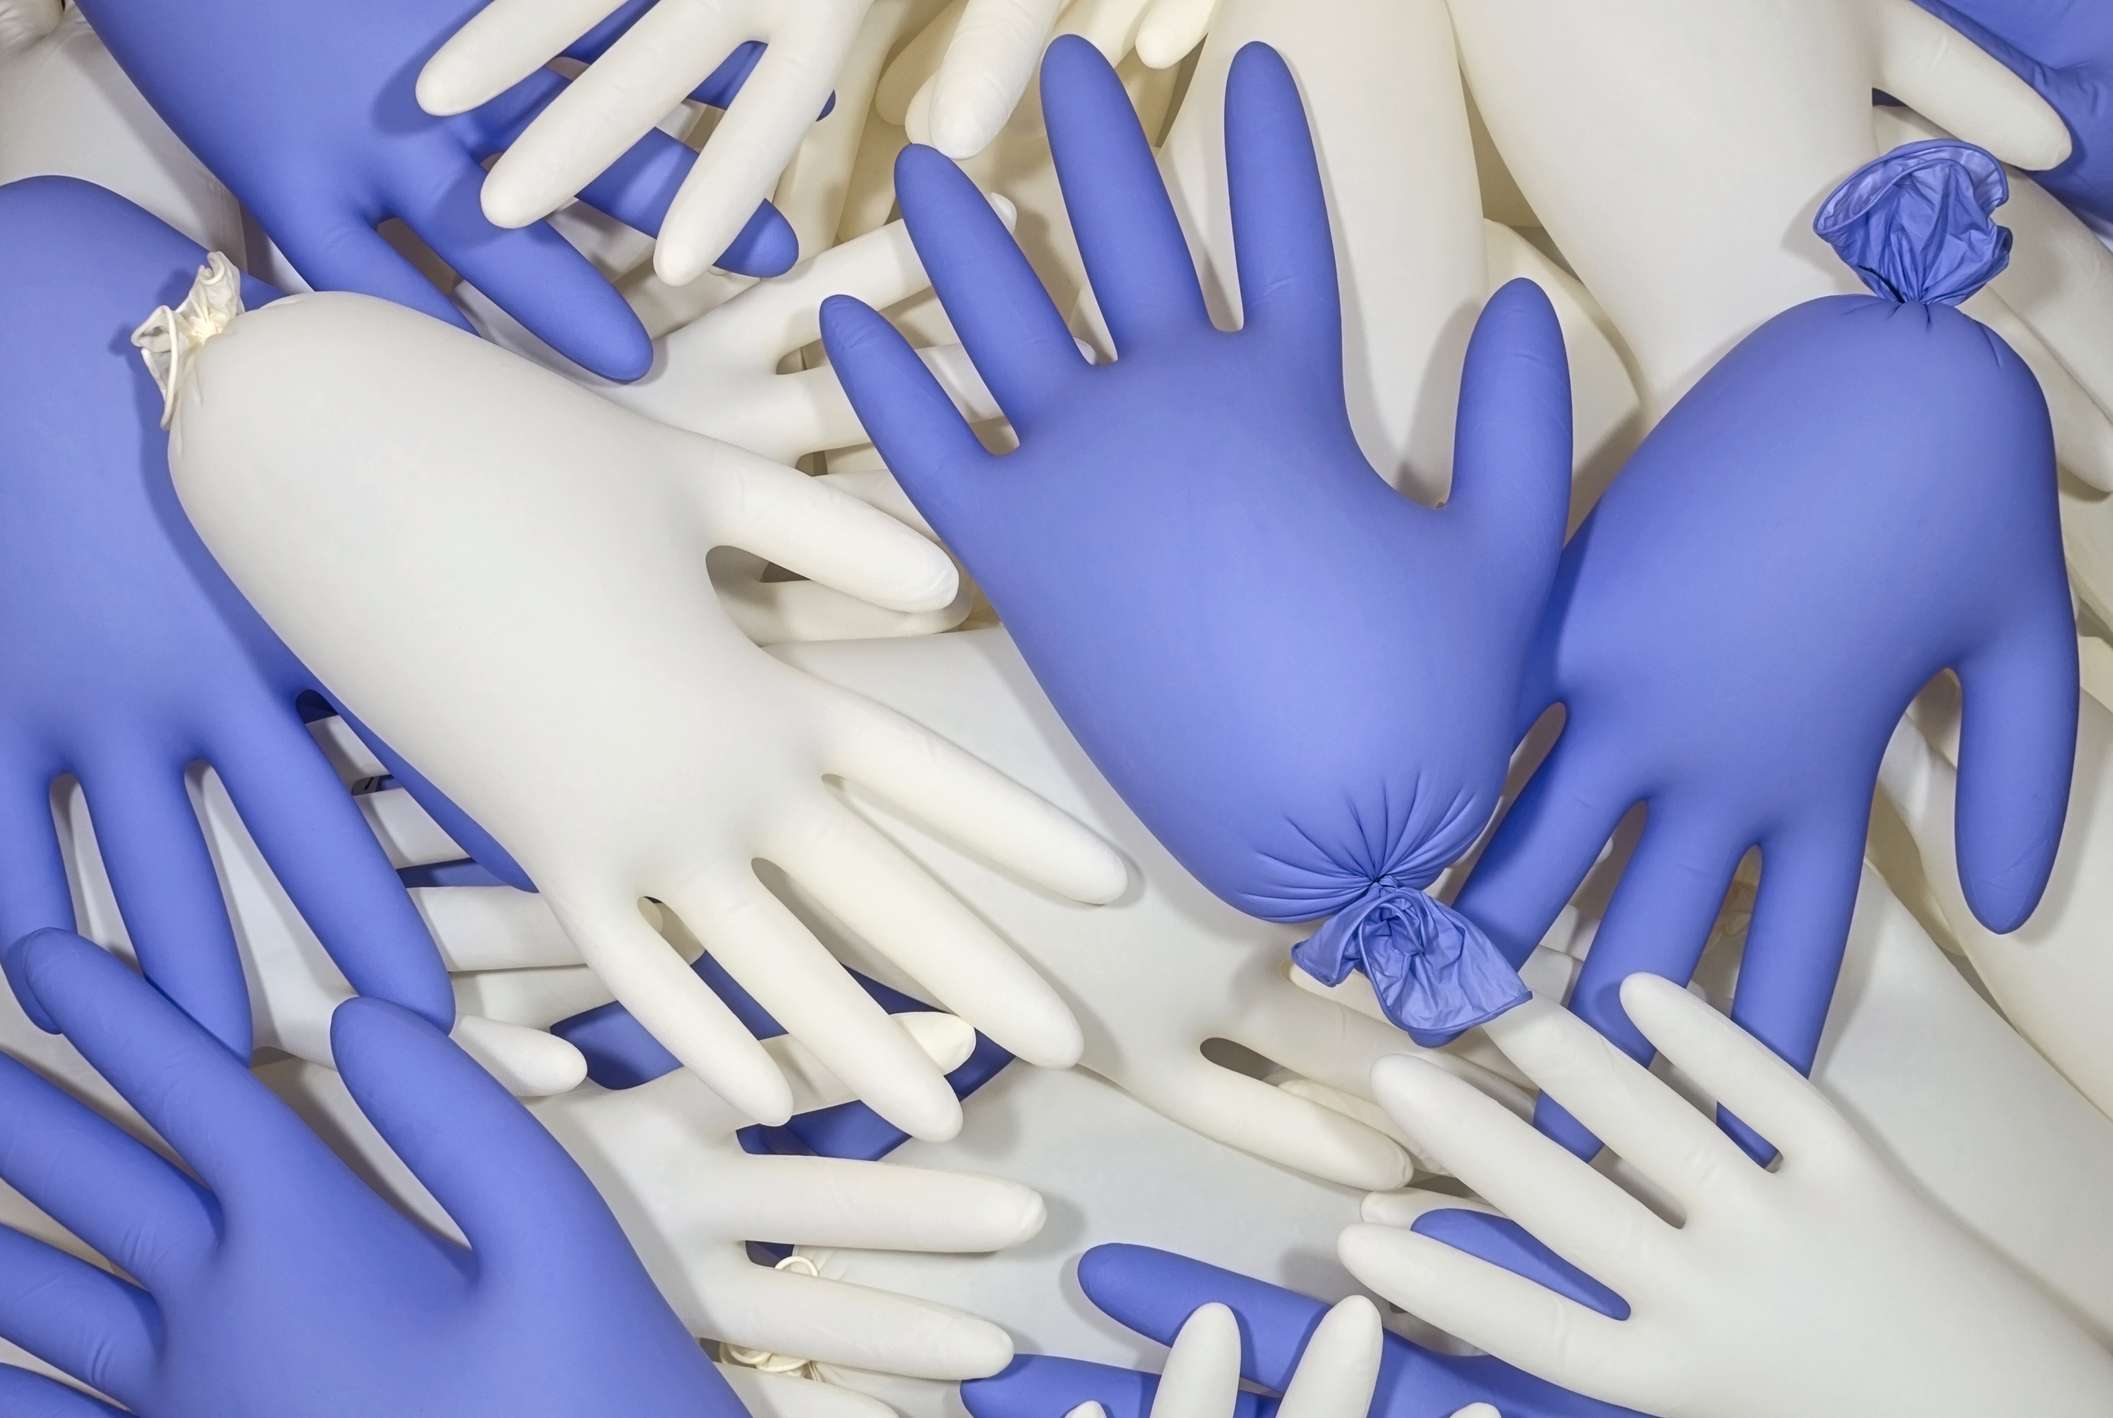 White and blue inflated medical latex gloves background